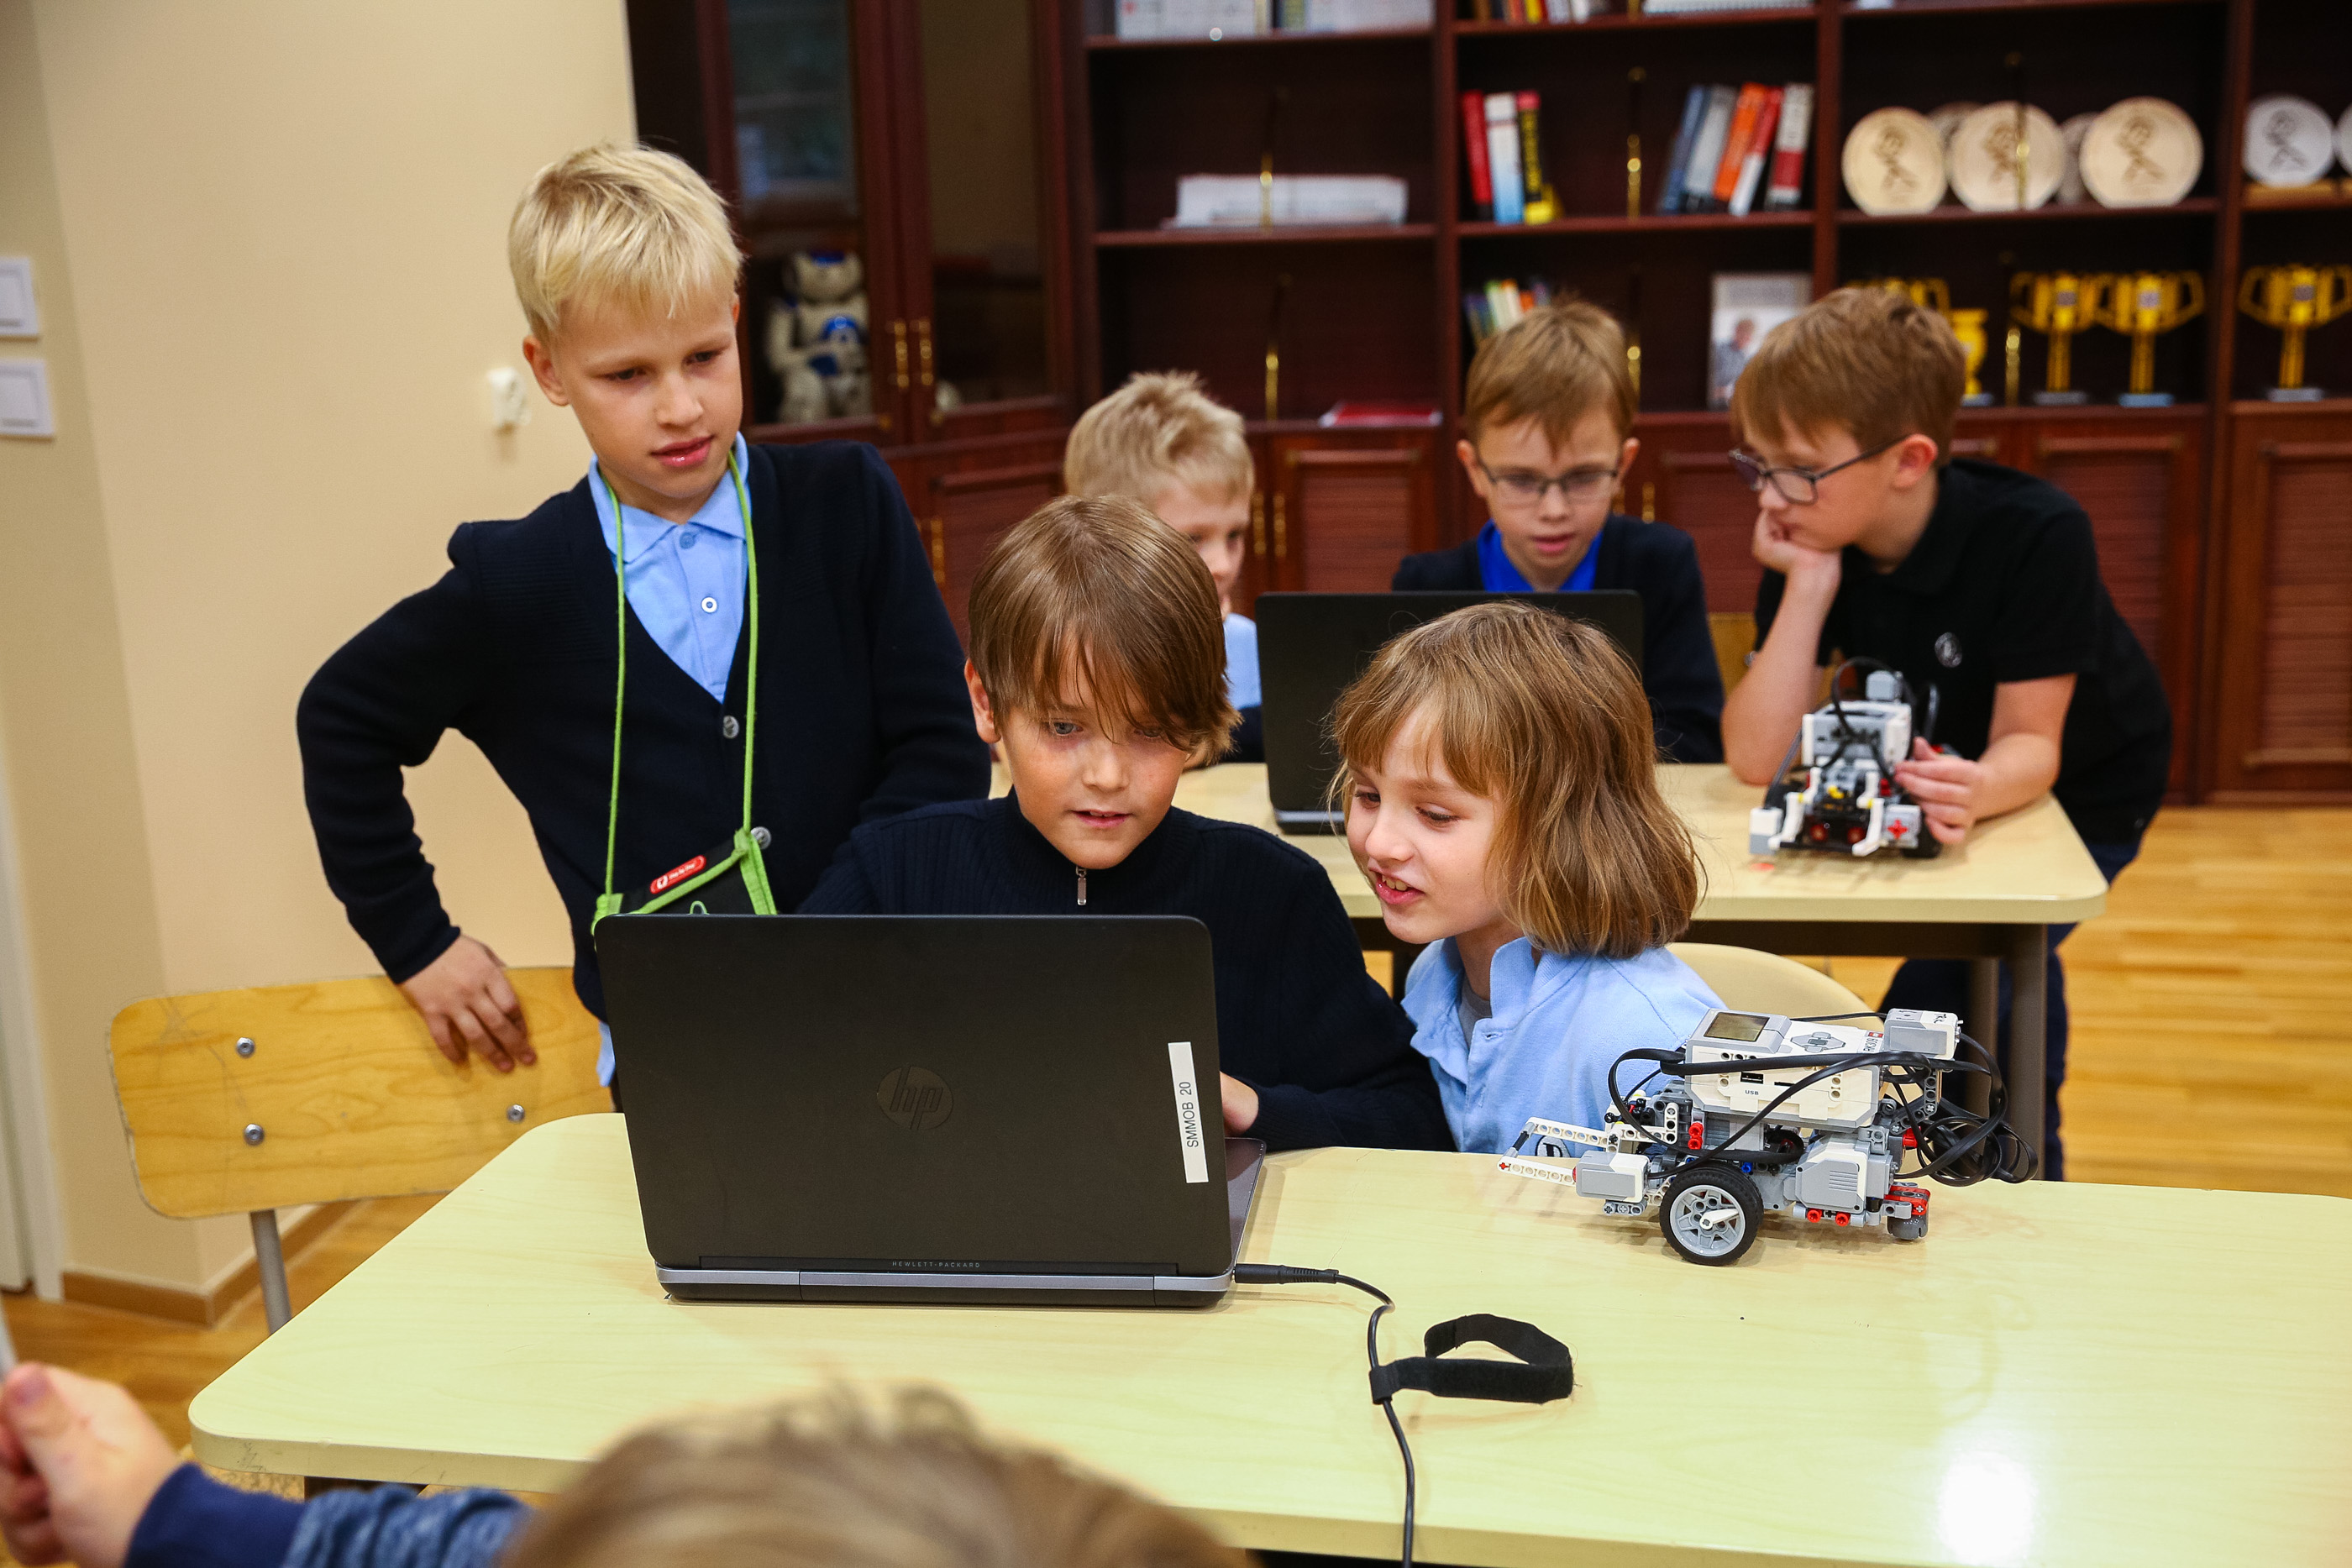 coding summer camp near me